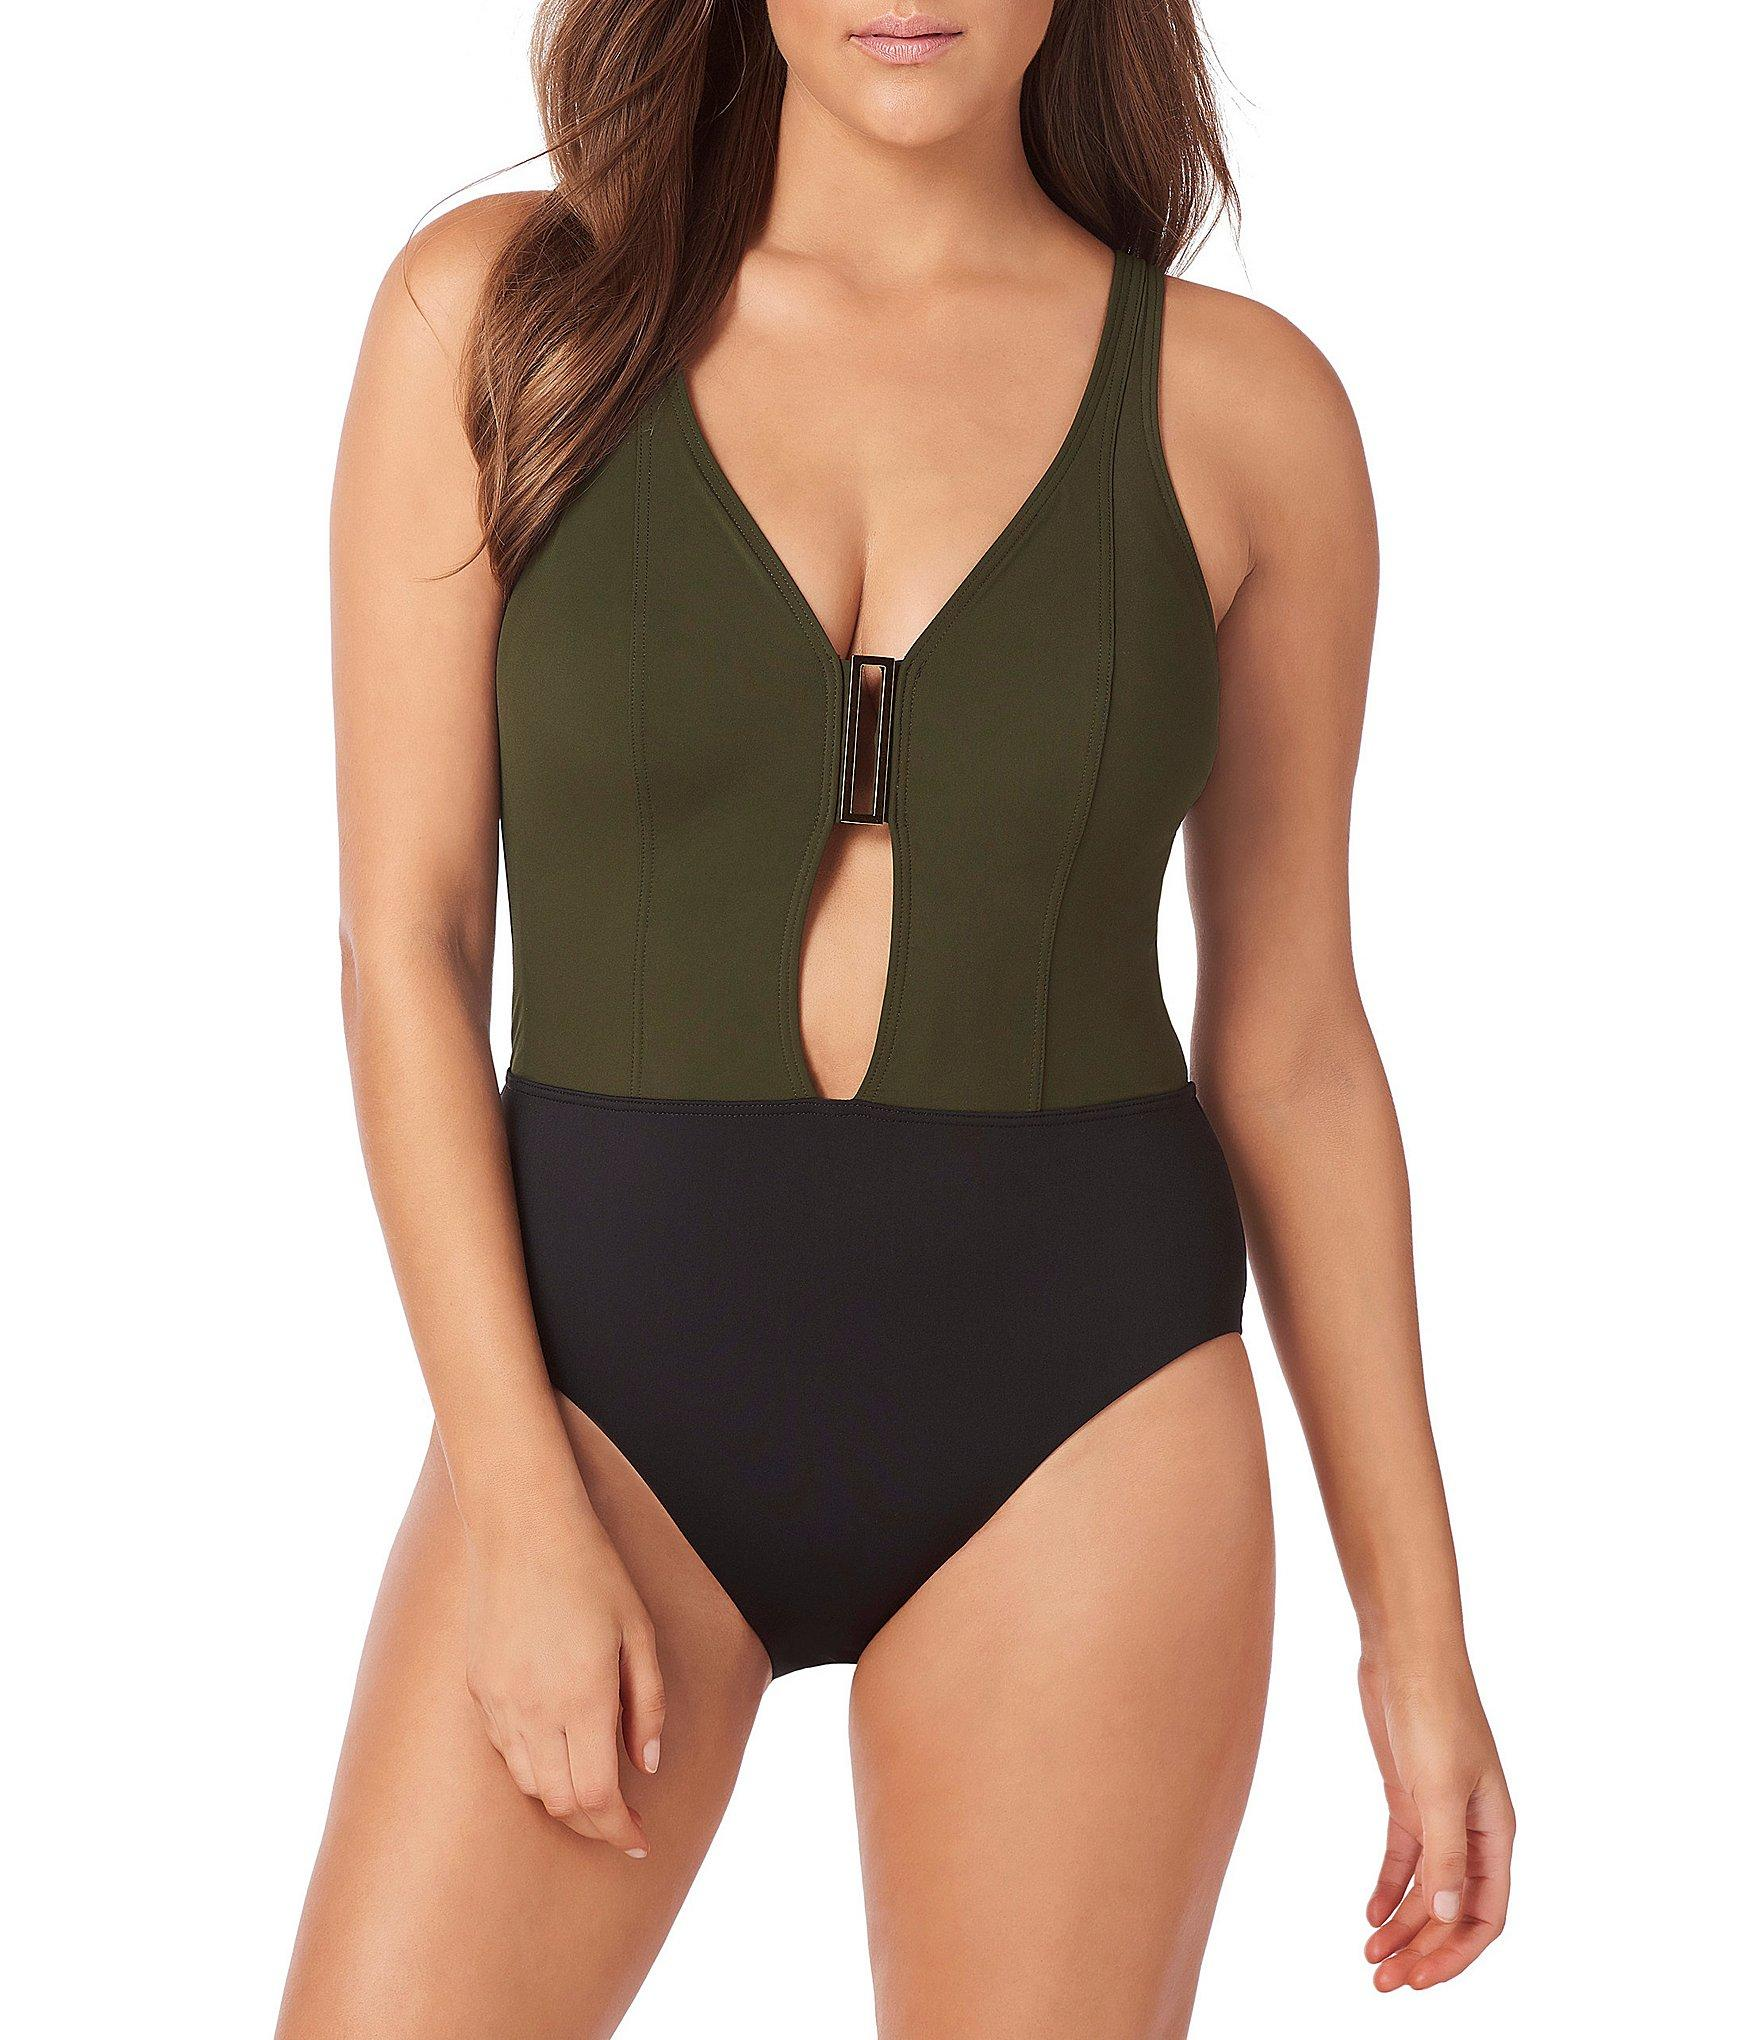 Miraclesuit. Women s Green Amoressa By Eclipse Ursa Plunge One Piece  Shaping Swimsuit 37cc14c0e